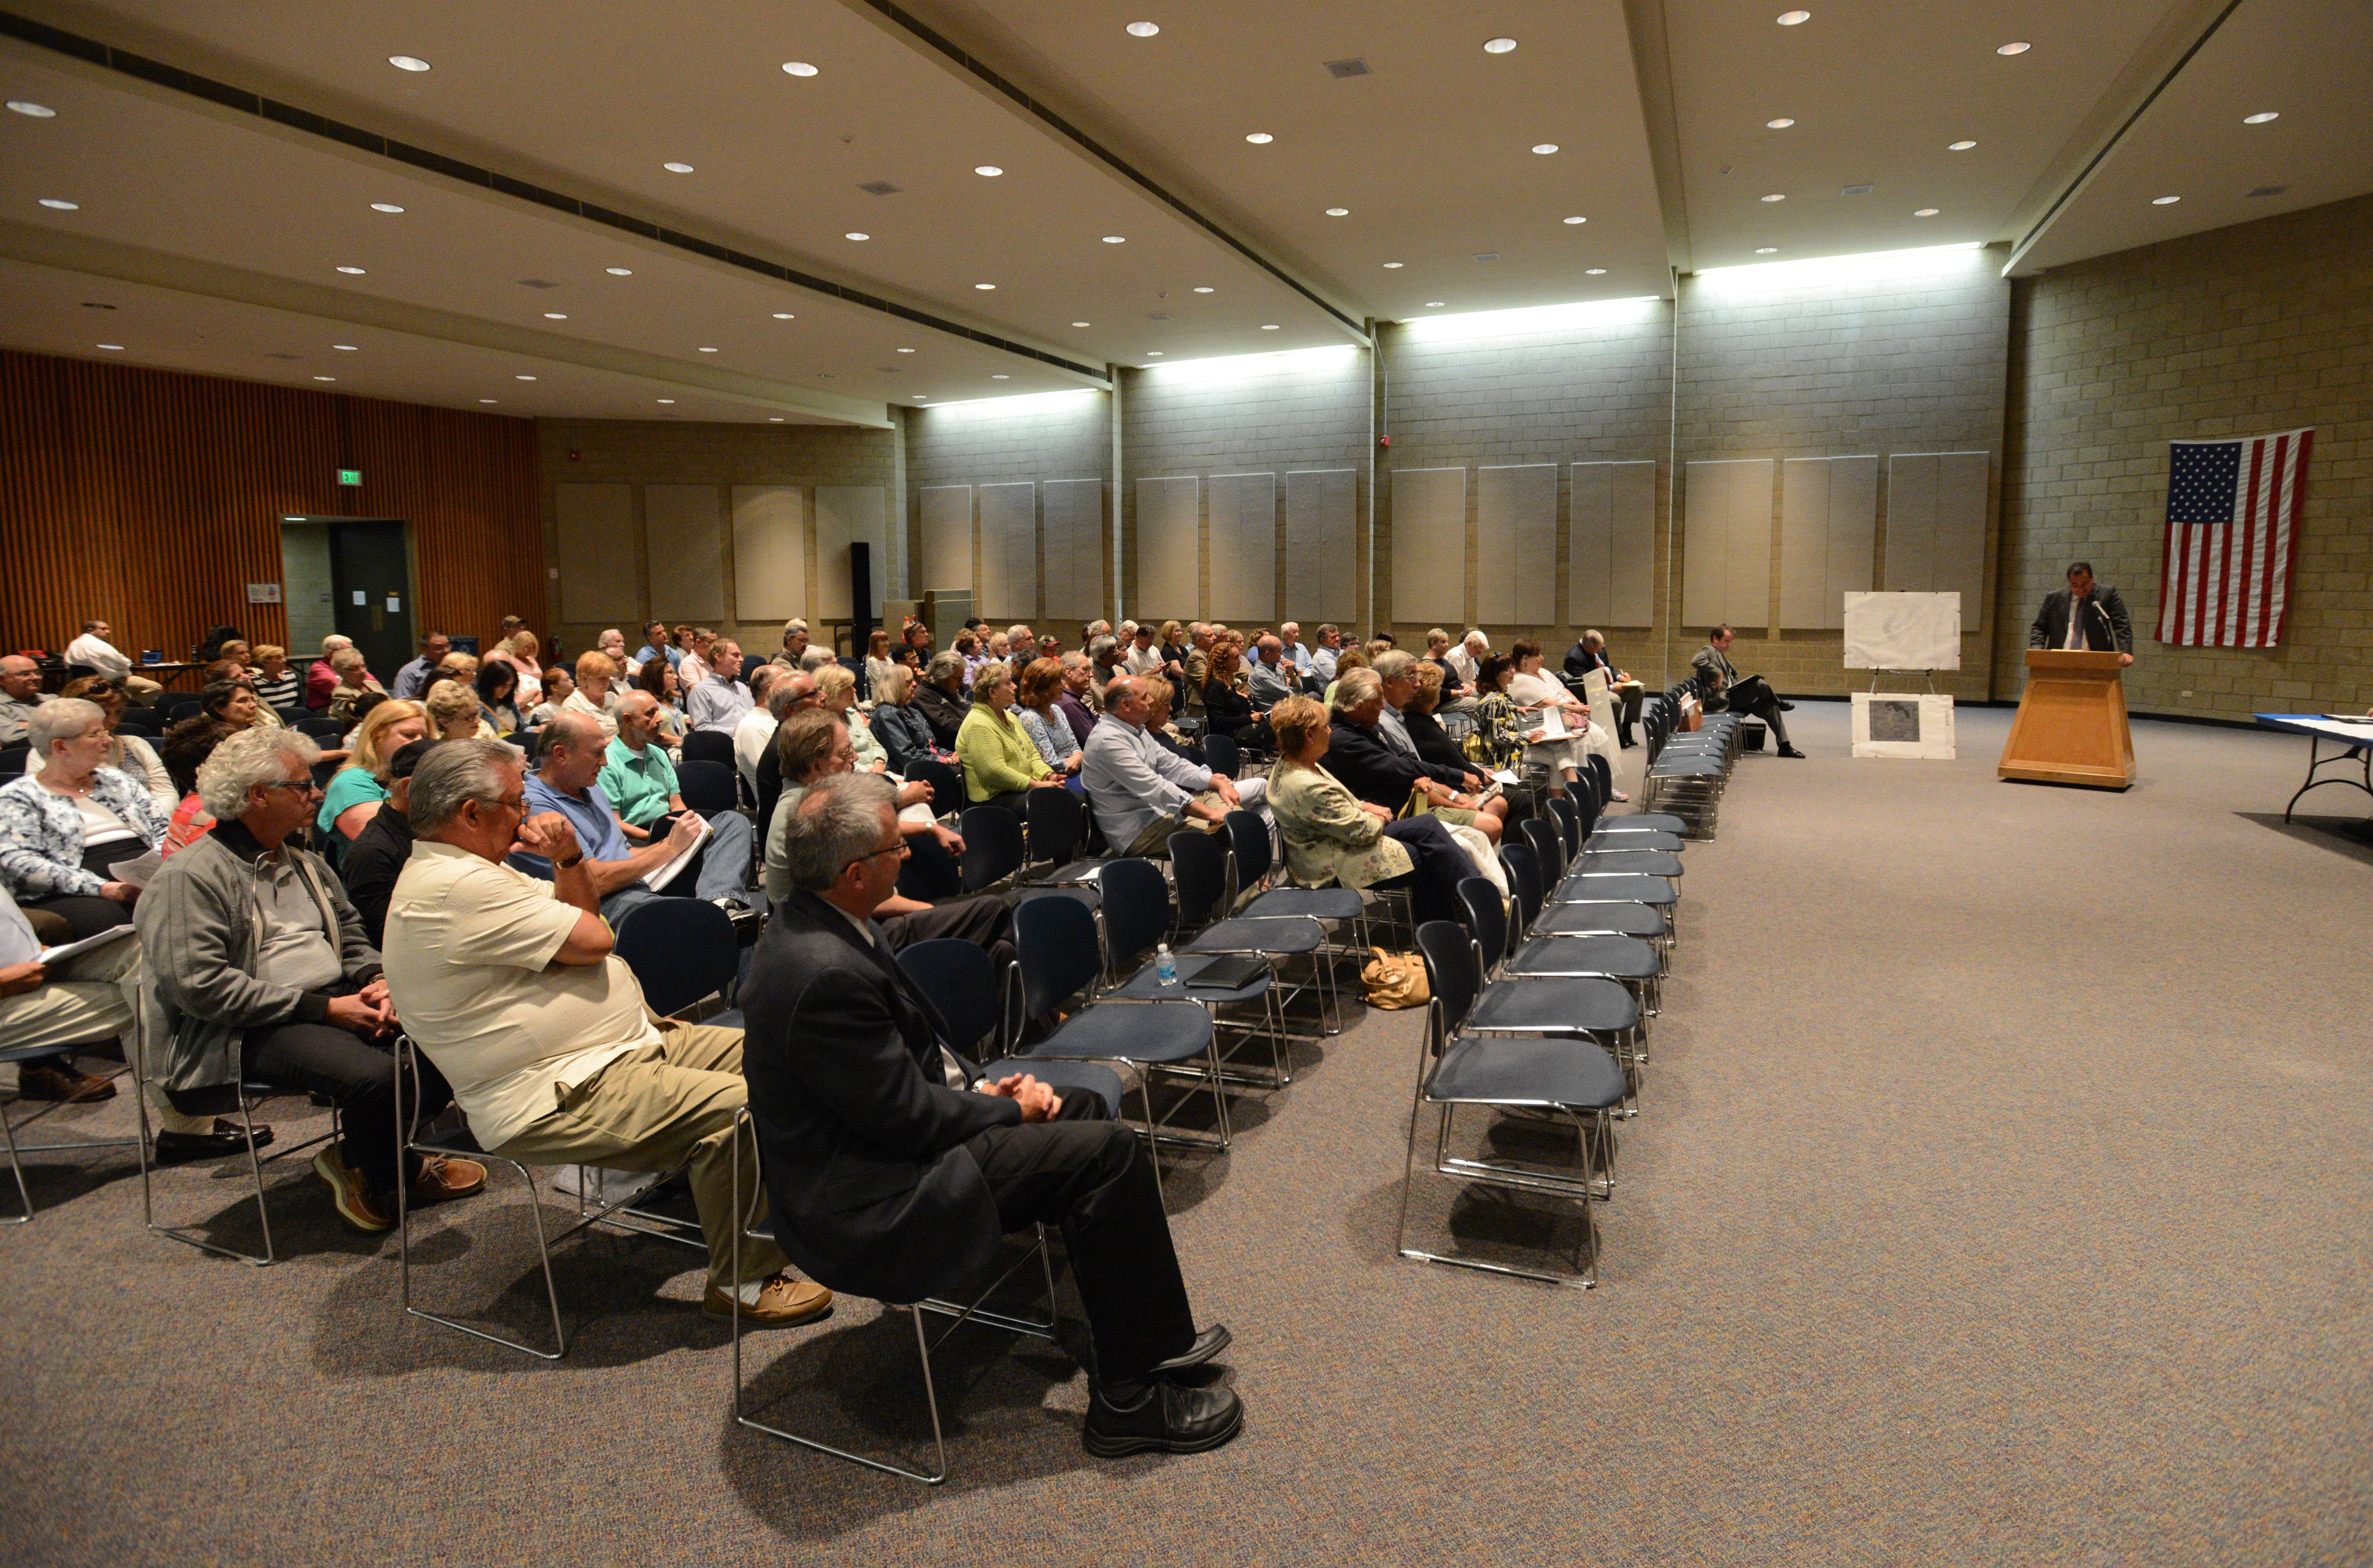 More than 100 residents attended a Thursday night public hearing to urge DuPage County officials to reject Ruth Lake Country Club's plan to build a skeet shooting range.